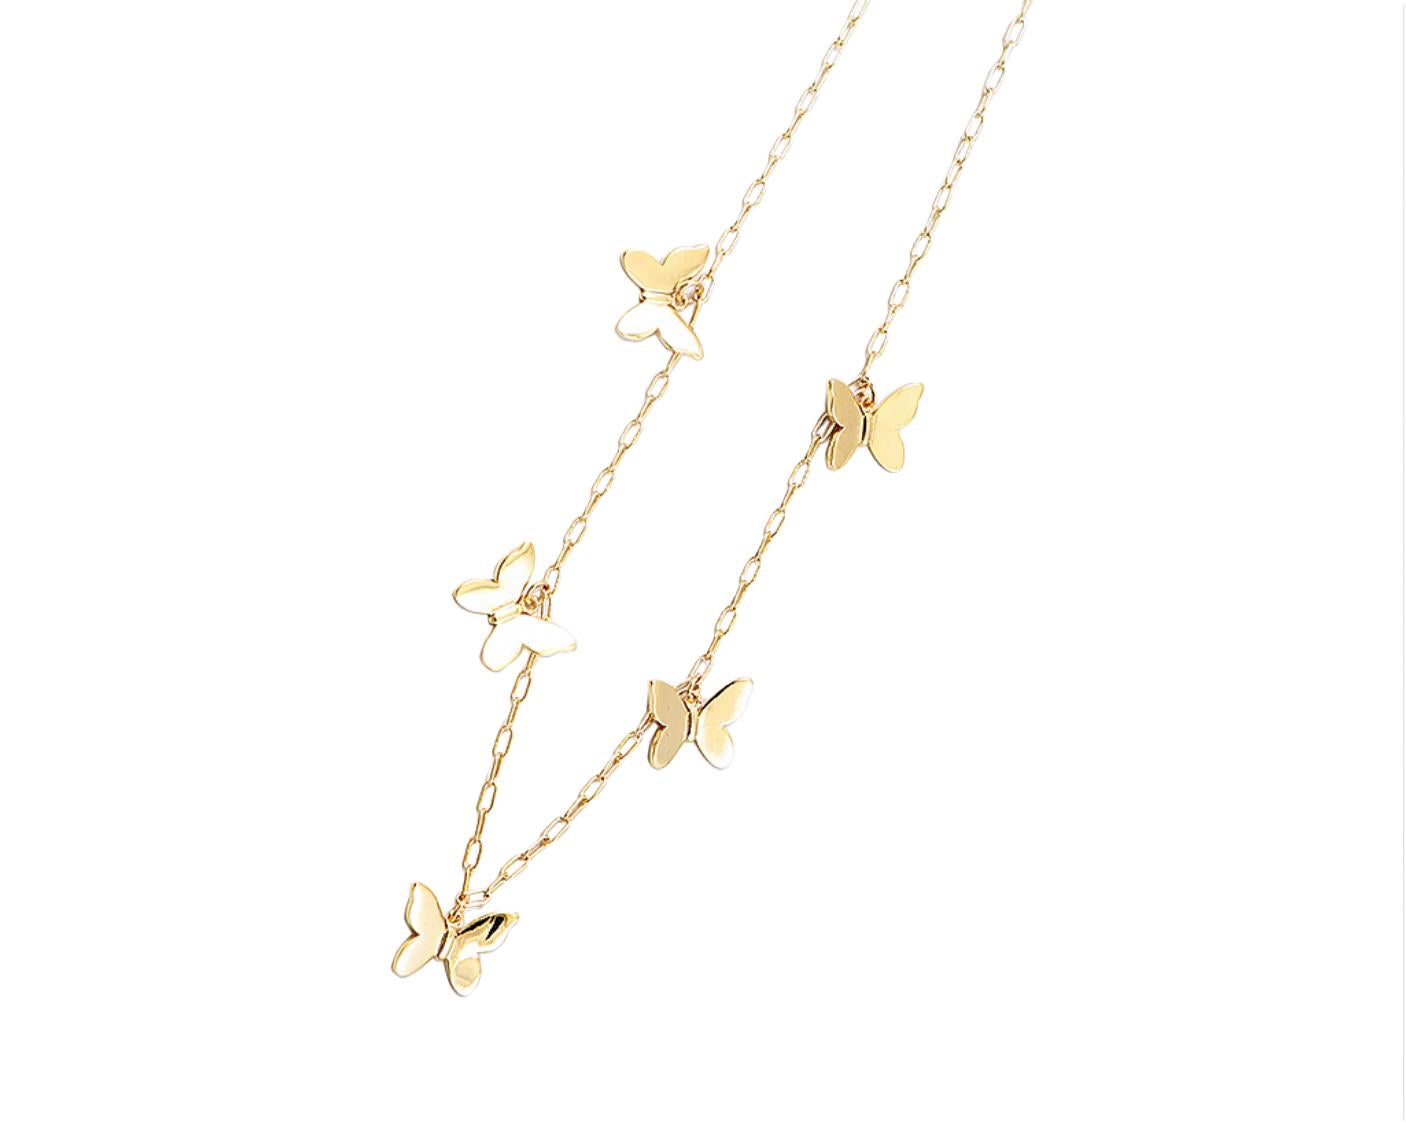 BITZ BUTTERFLY NECKLACE 2.0 - FLOATING CHARMS